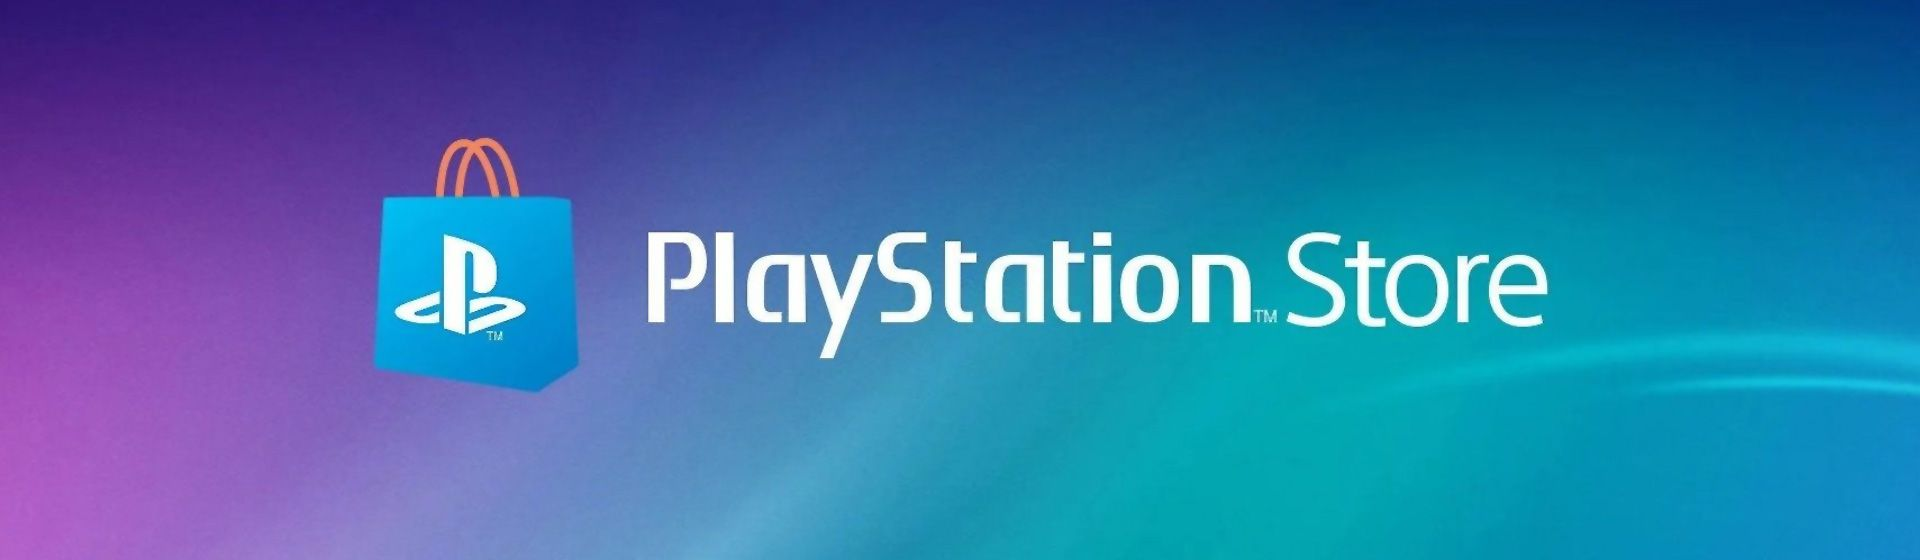 PS Store: Sony confirma encerramento no PS3, PS Vita e PSP